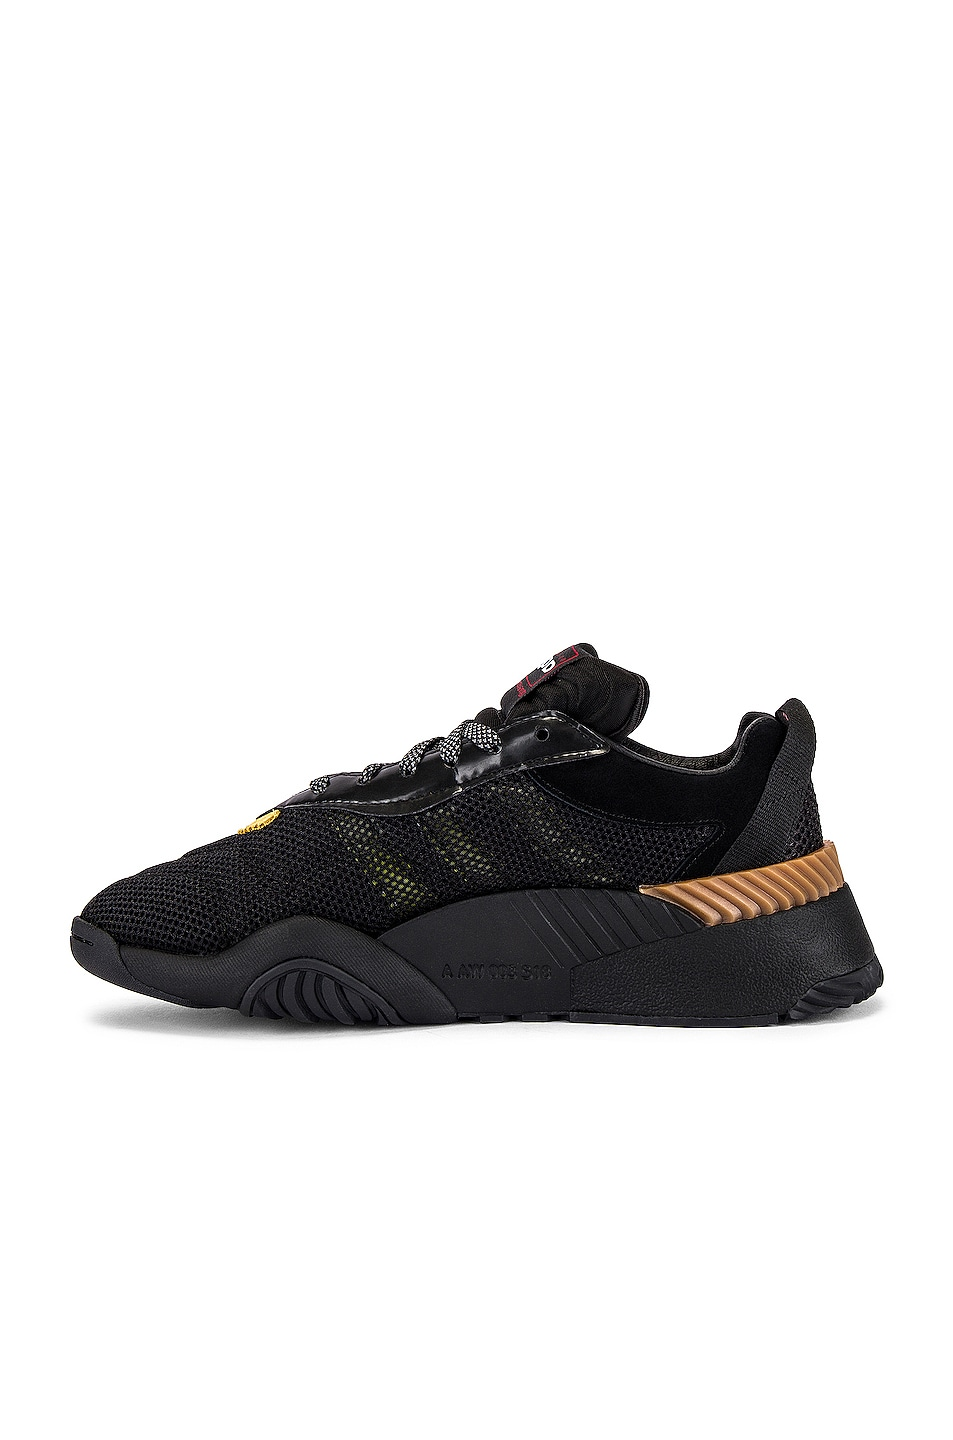 Image 5 of adidas by Alexander Wang Turnout Trainer Sneaker in Core Black & Yellow & Light Brown